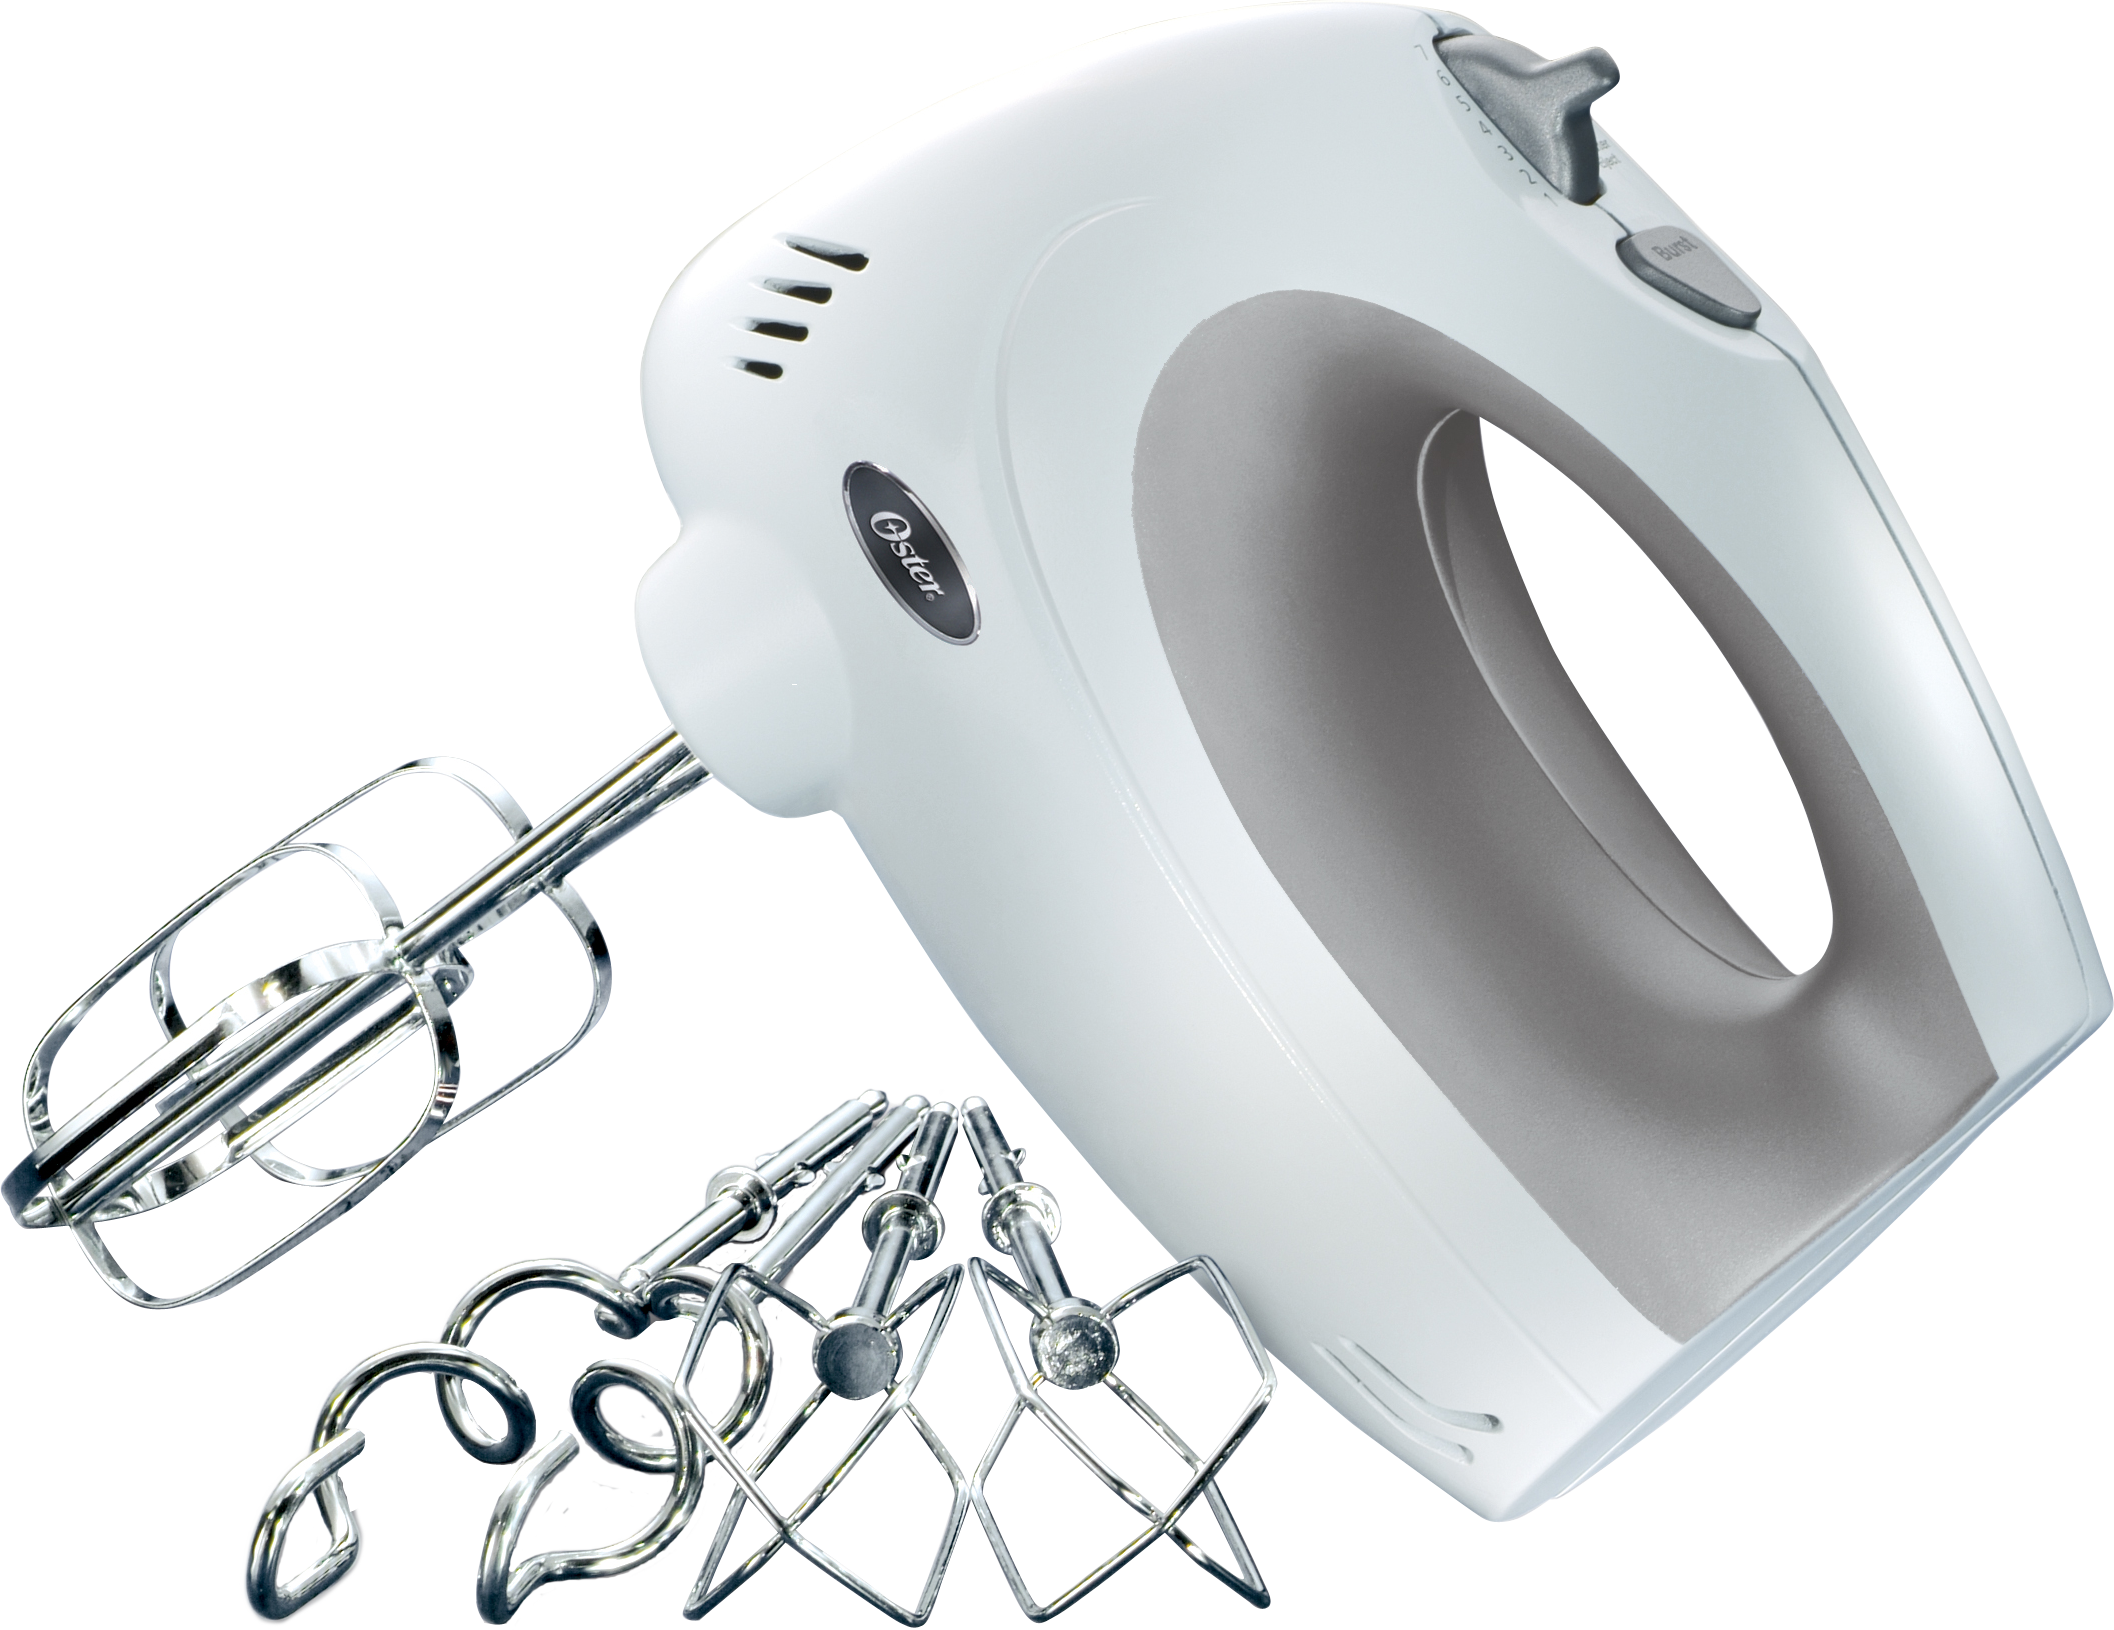 Oster White 6-Speed Hand Mixer (2532)